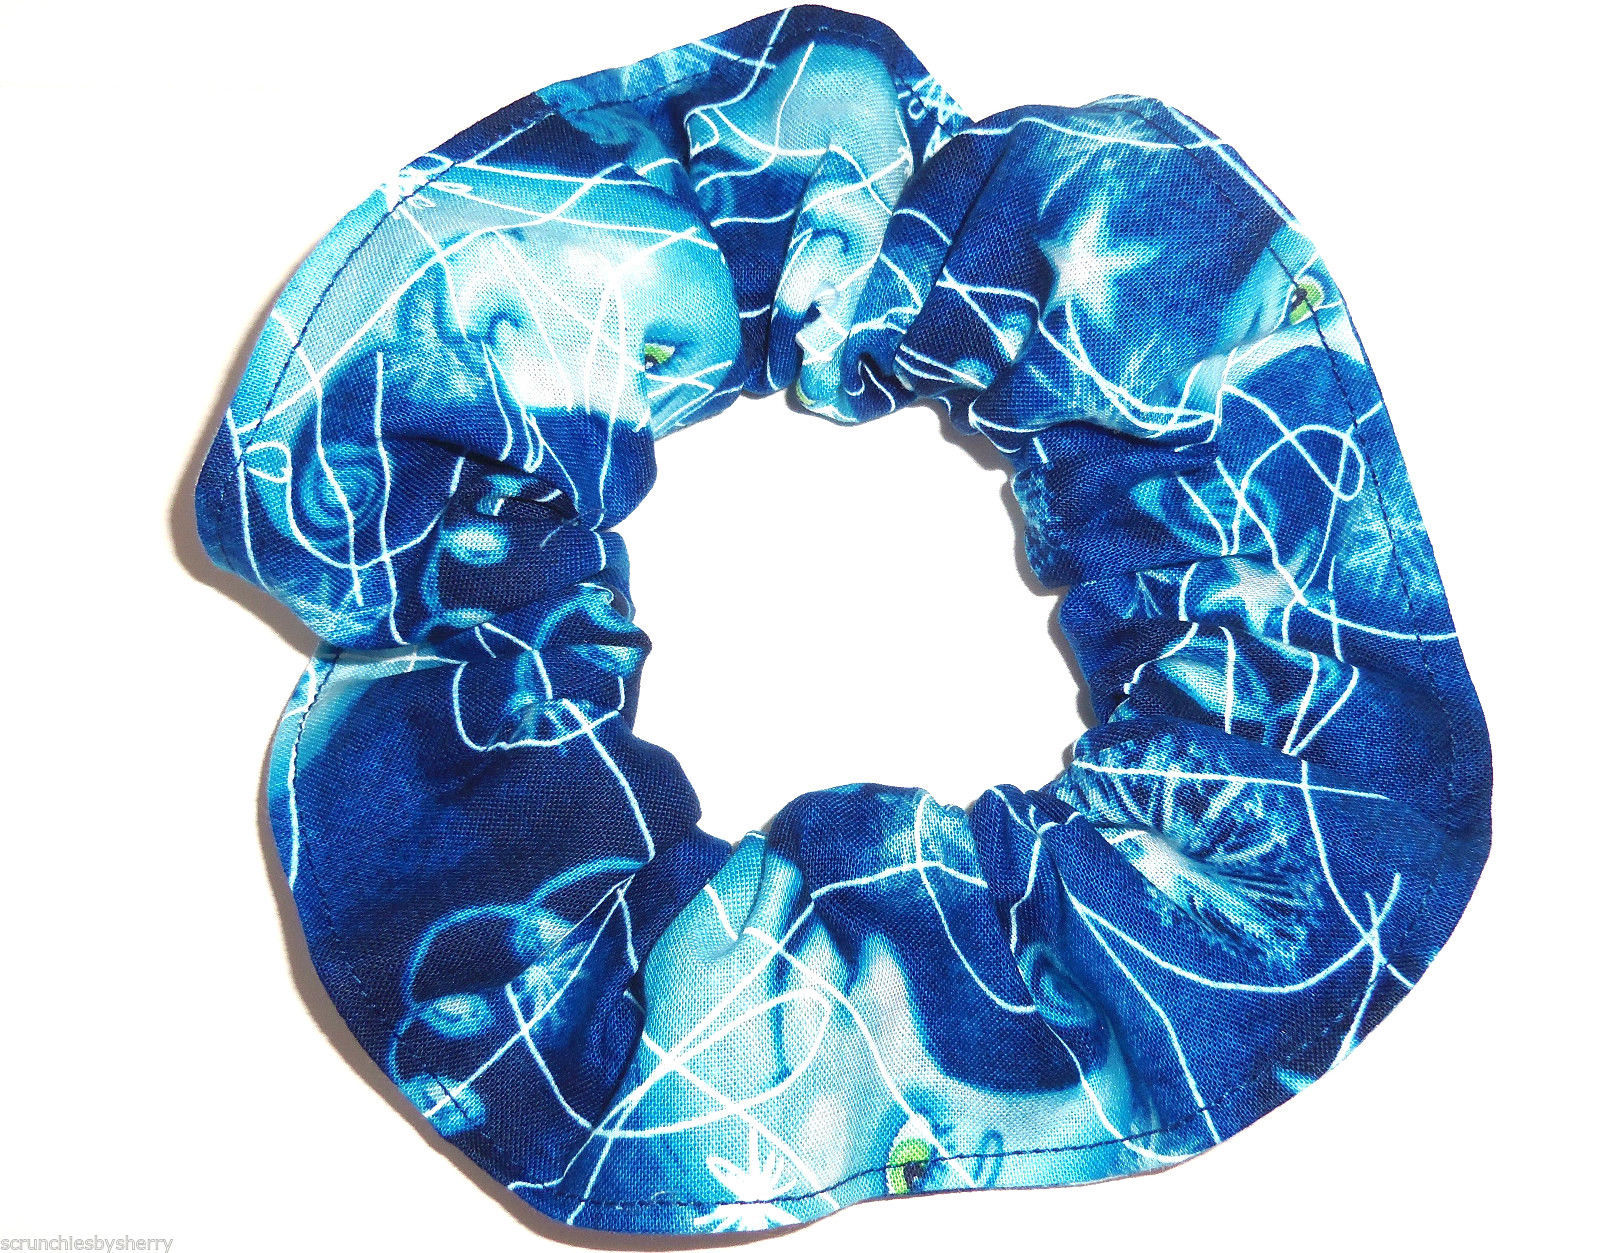 Primary image for Hair Scrunchie Moon Shine Blue Fabric Tie Ponytail Holder Scrunchies by Sherry